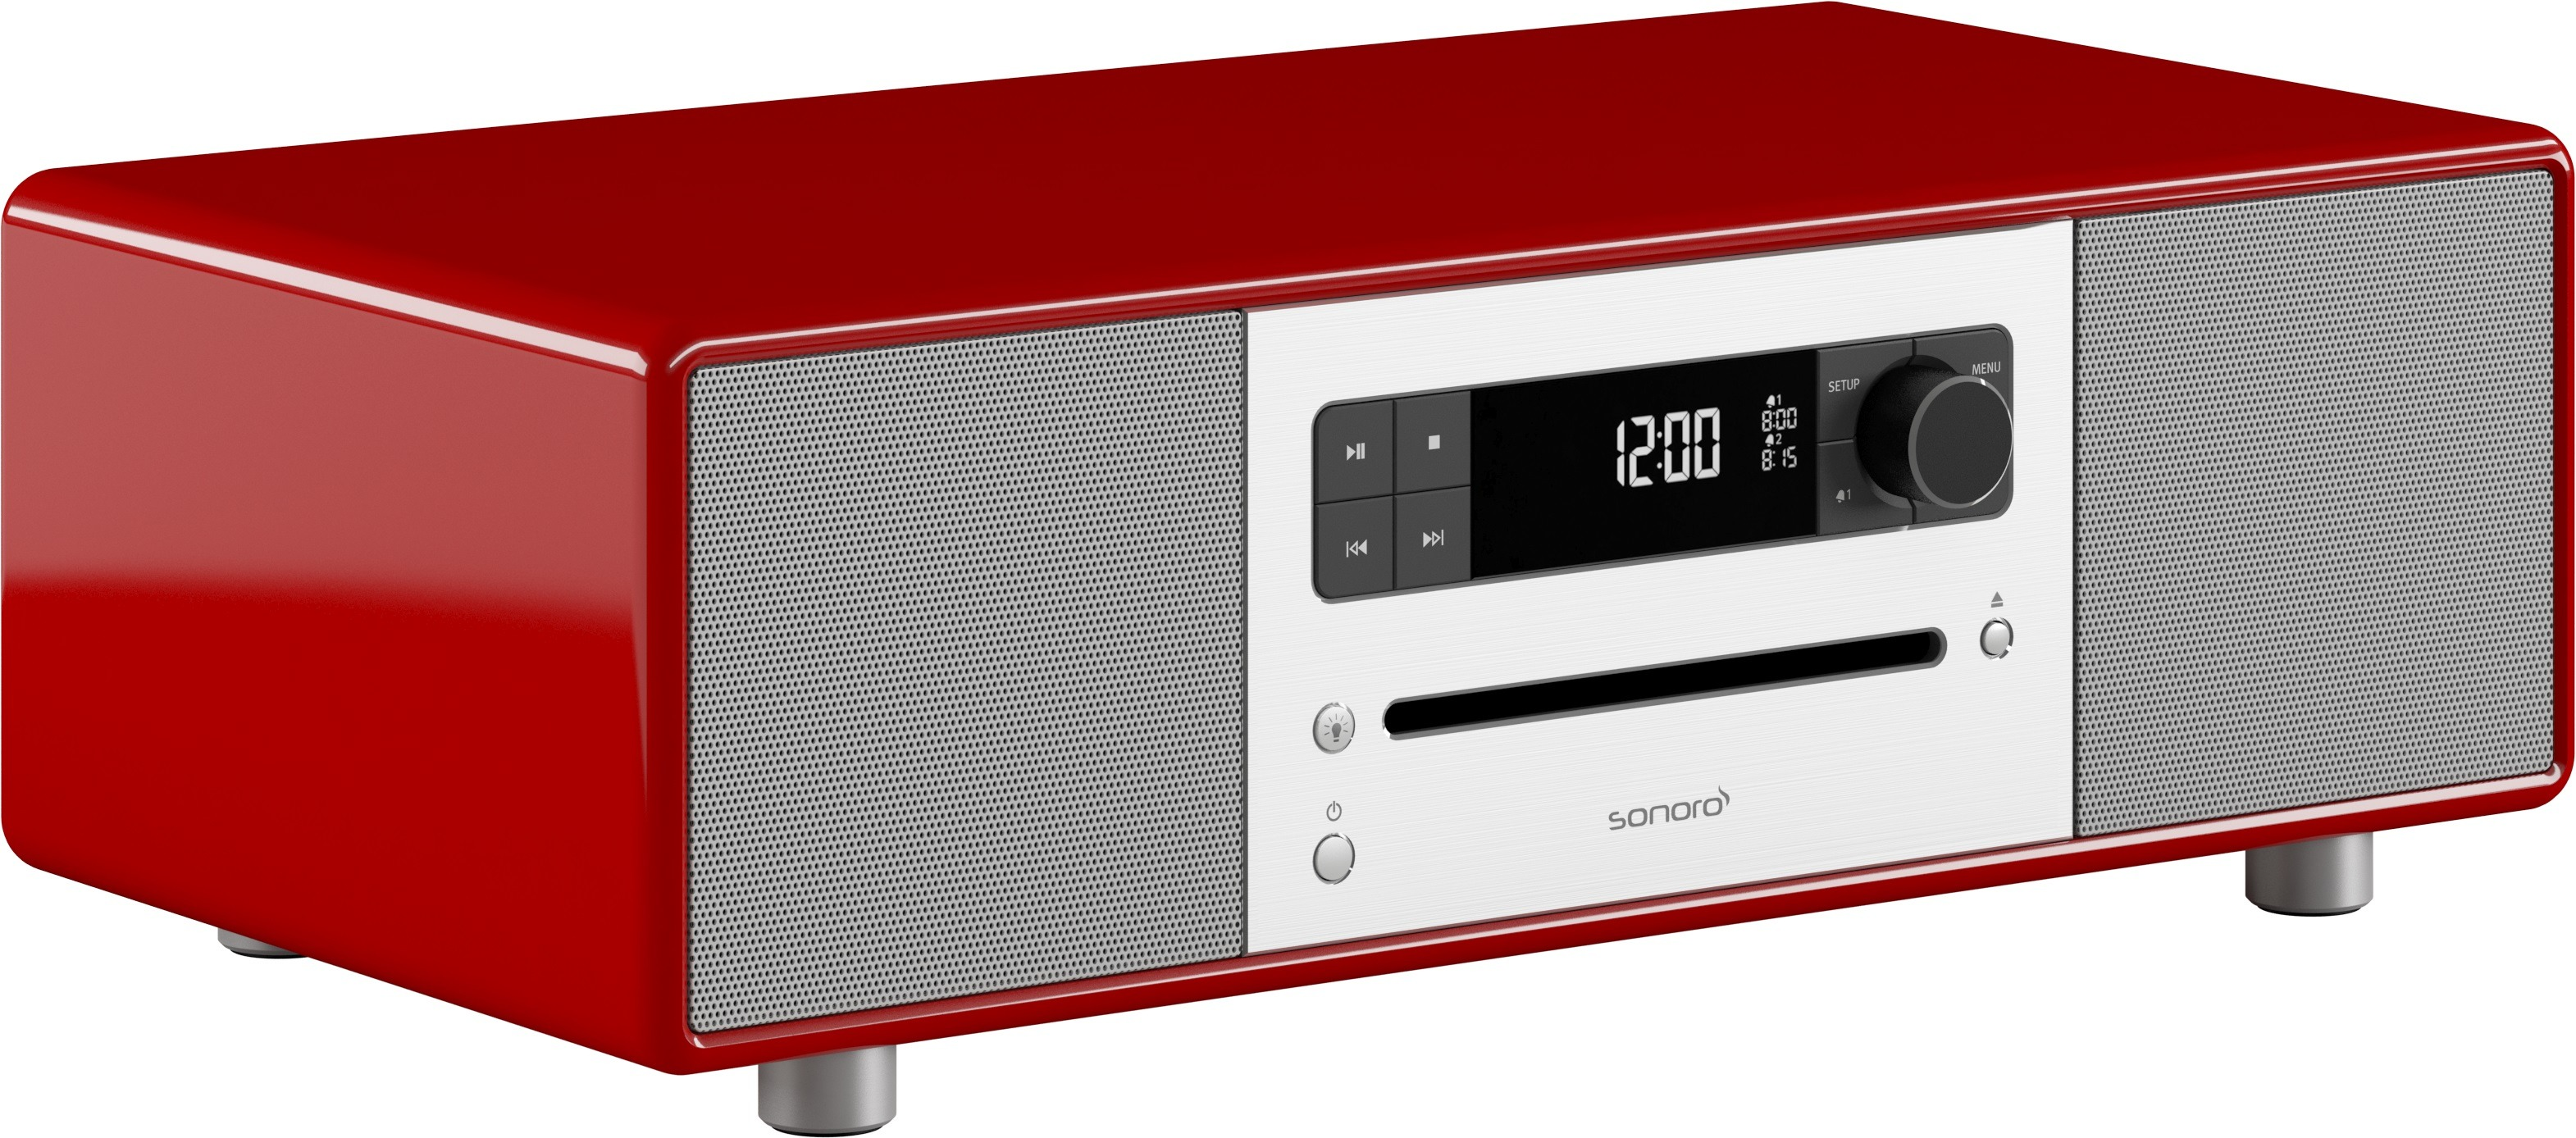 Sonoro stereo set Stereo 320 rood